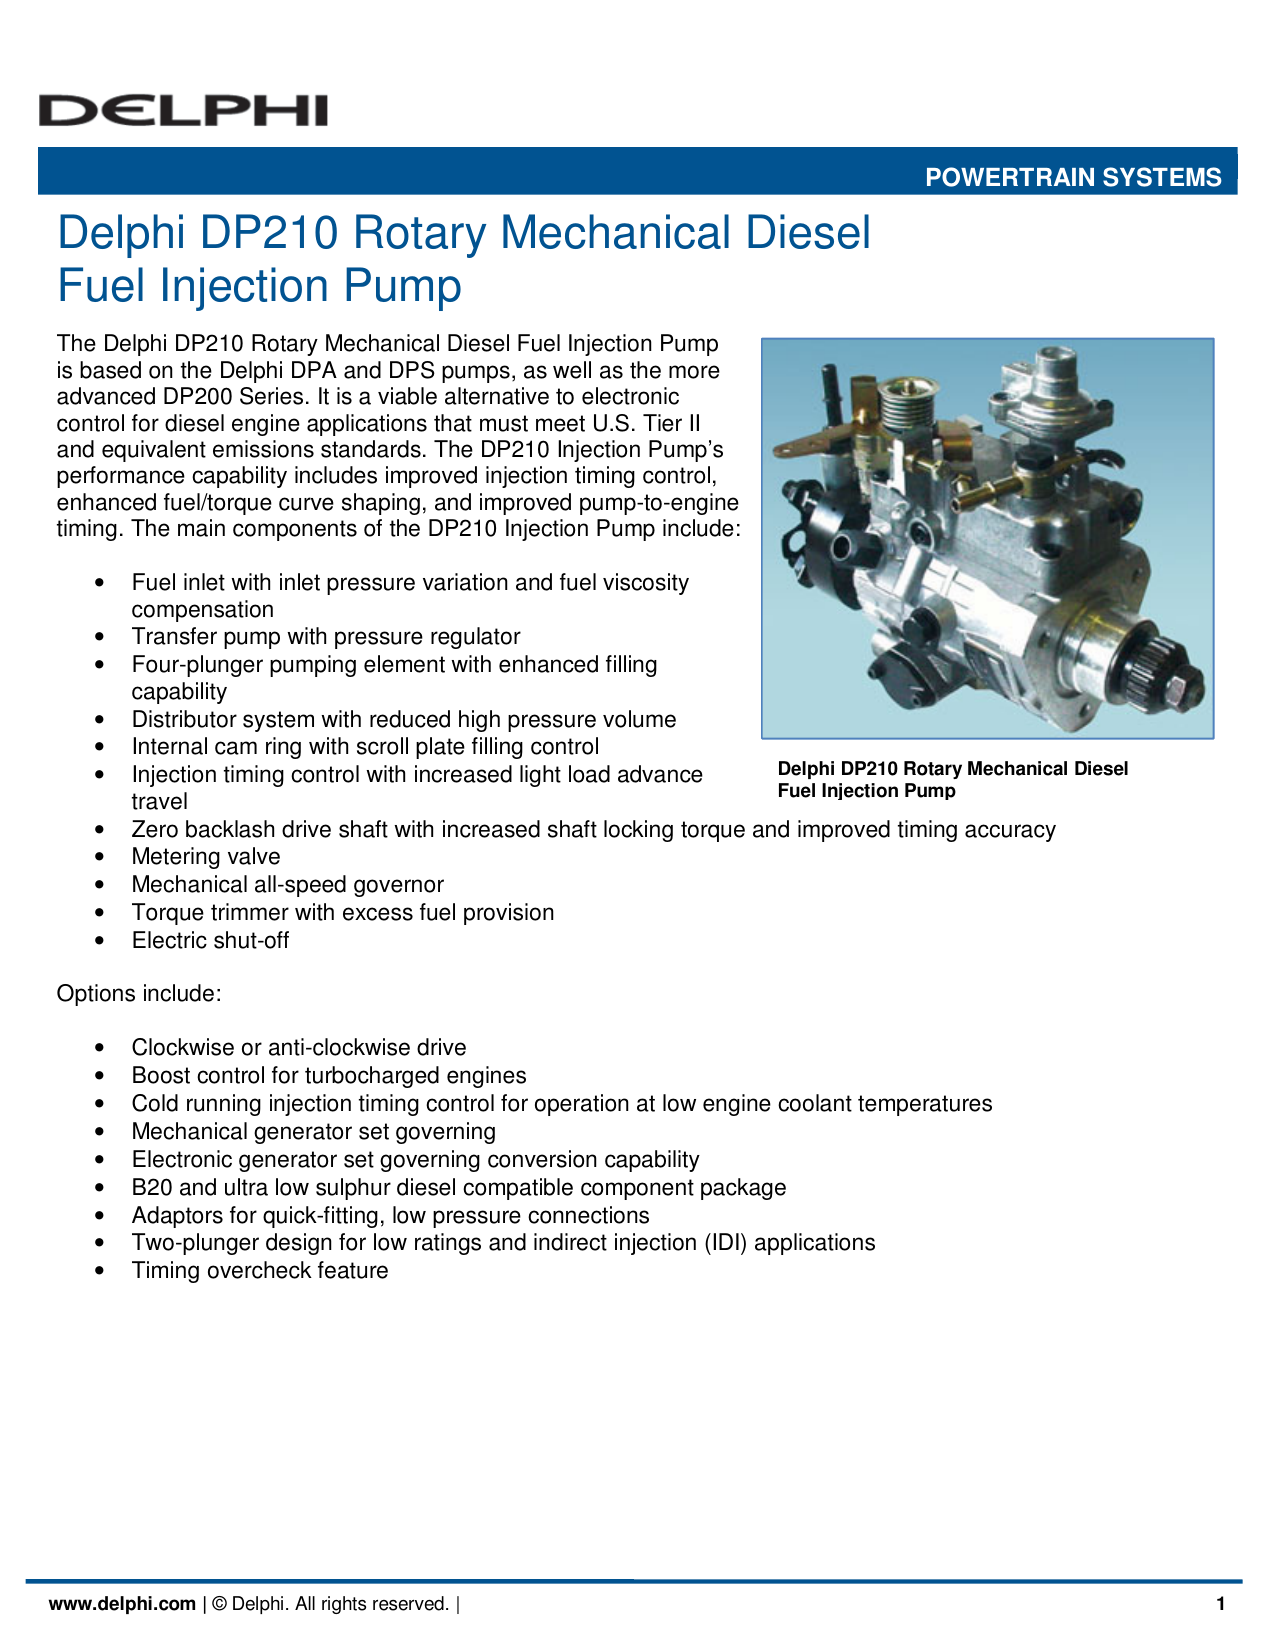 Delphi DP210 Rotary Mechanical Diesel Fuel Injection Pump